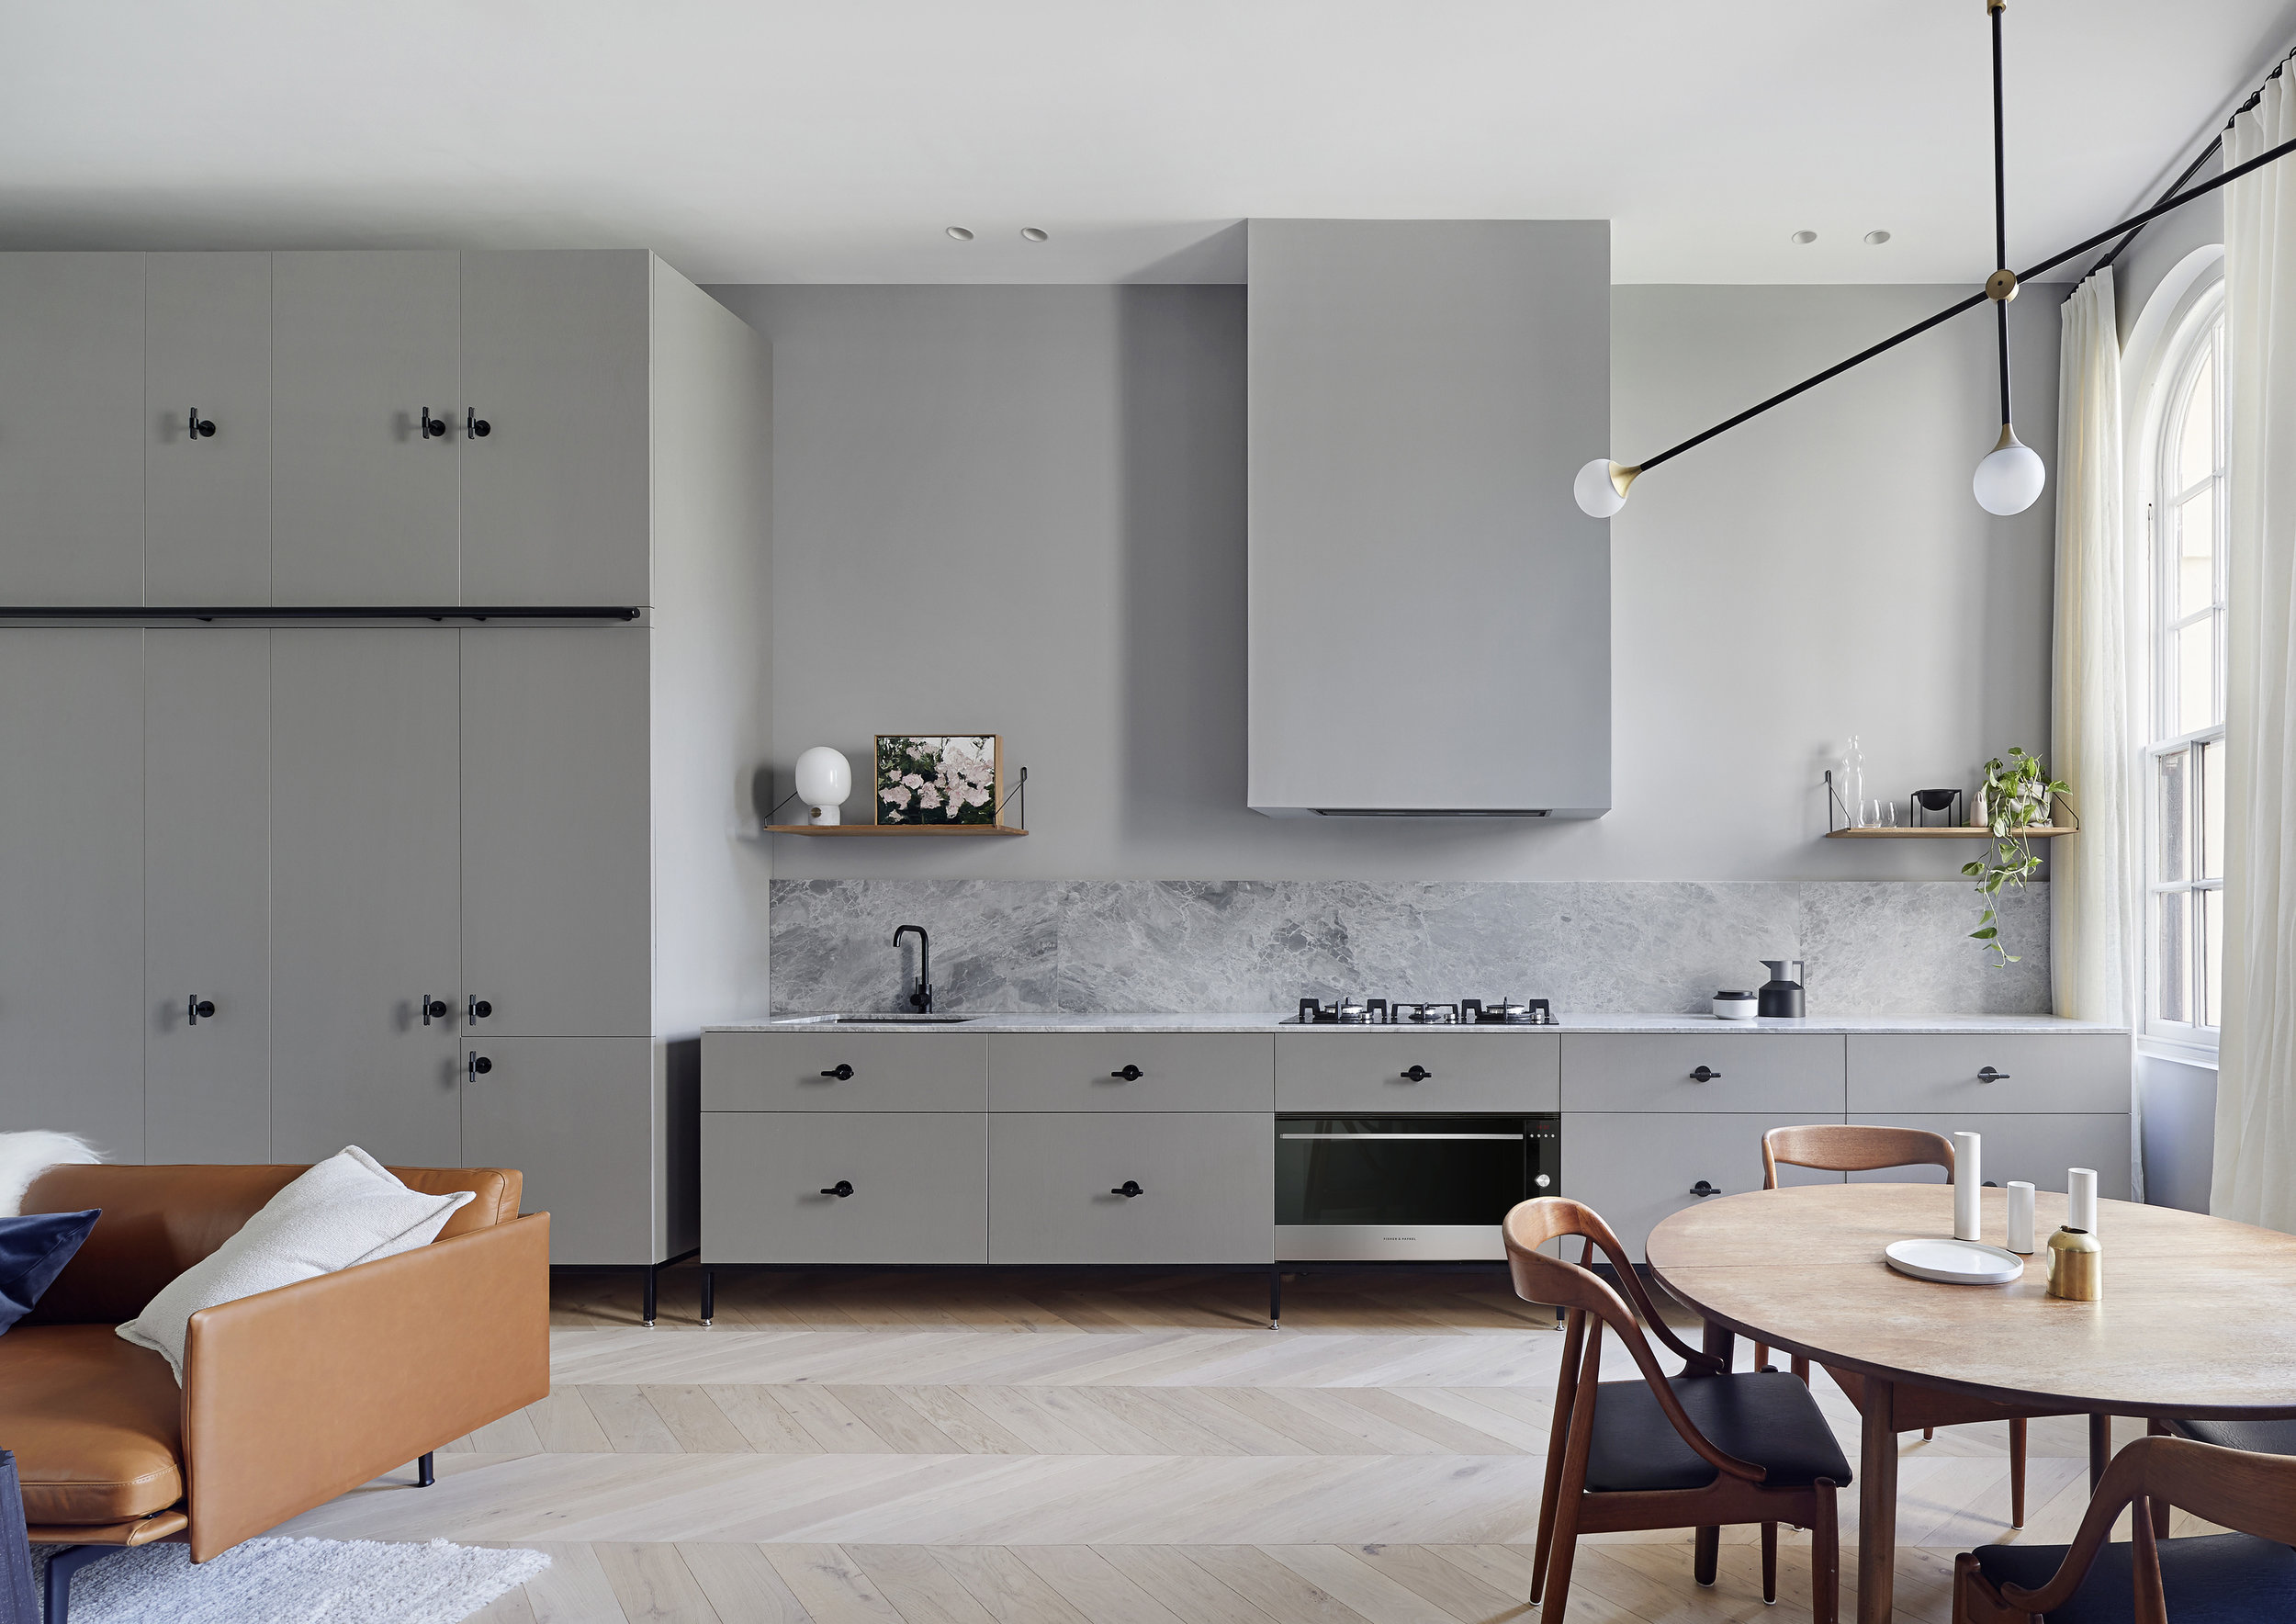 Photography  Shannon McGrath /  Interior design  Sarah Wolfendale /  Styling  Nina Provan / Image courtesy of Fisher & Paykel